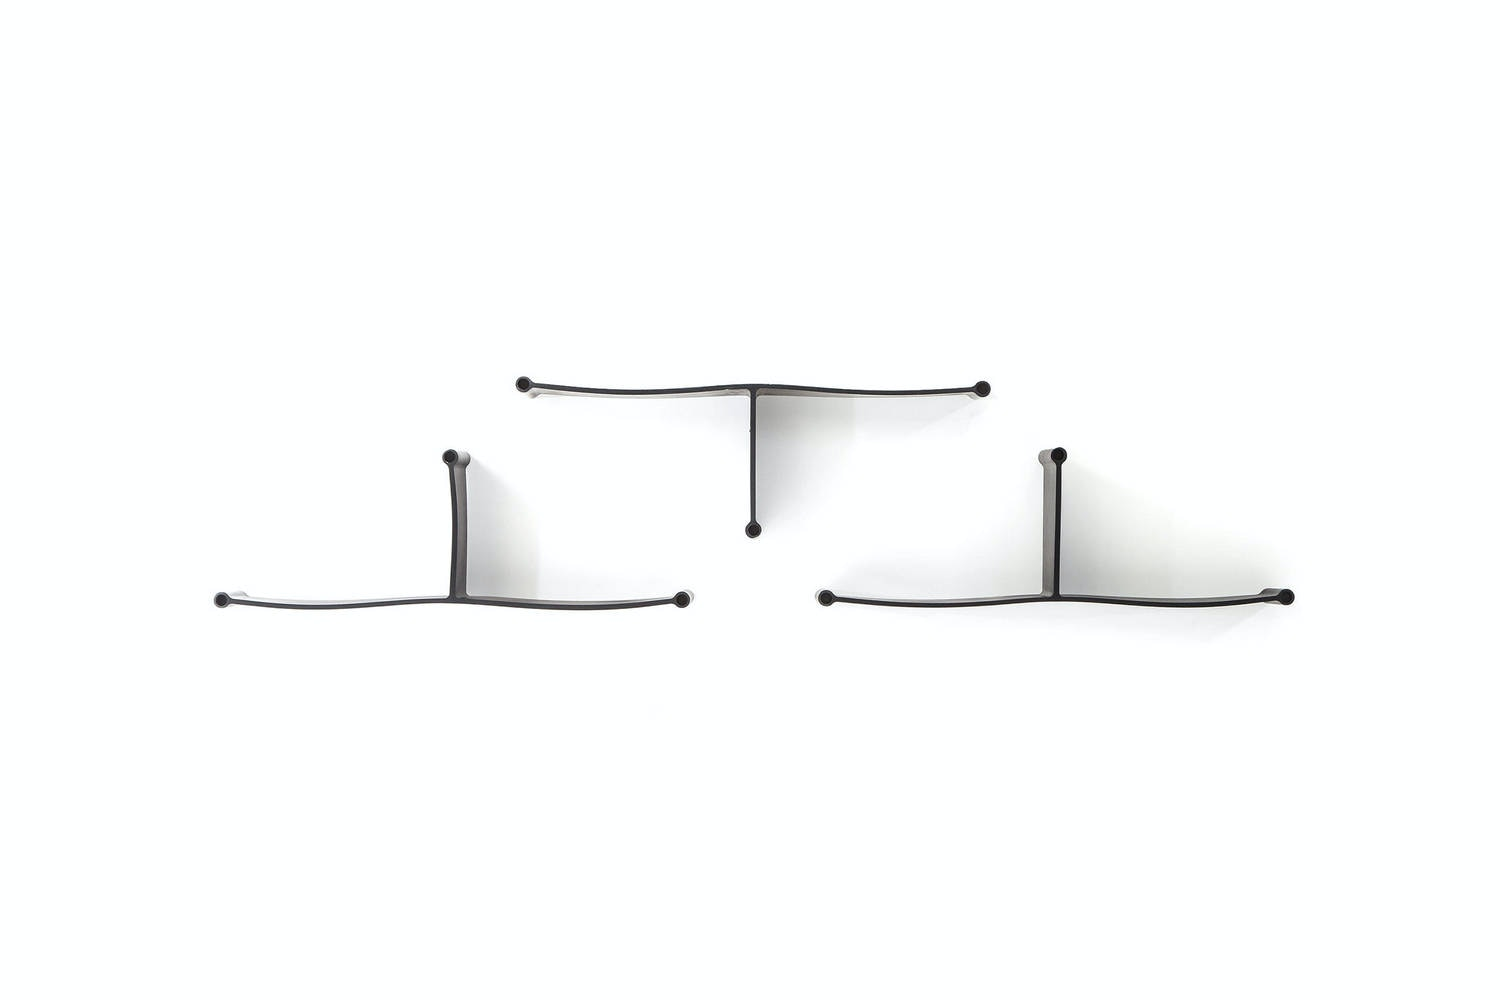 086 Baleno Shelf by Ronan & Erwan Bouroullec for Cassina